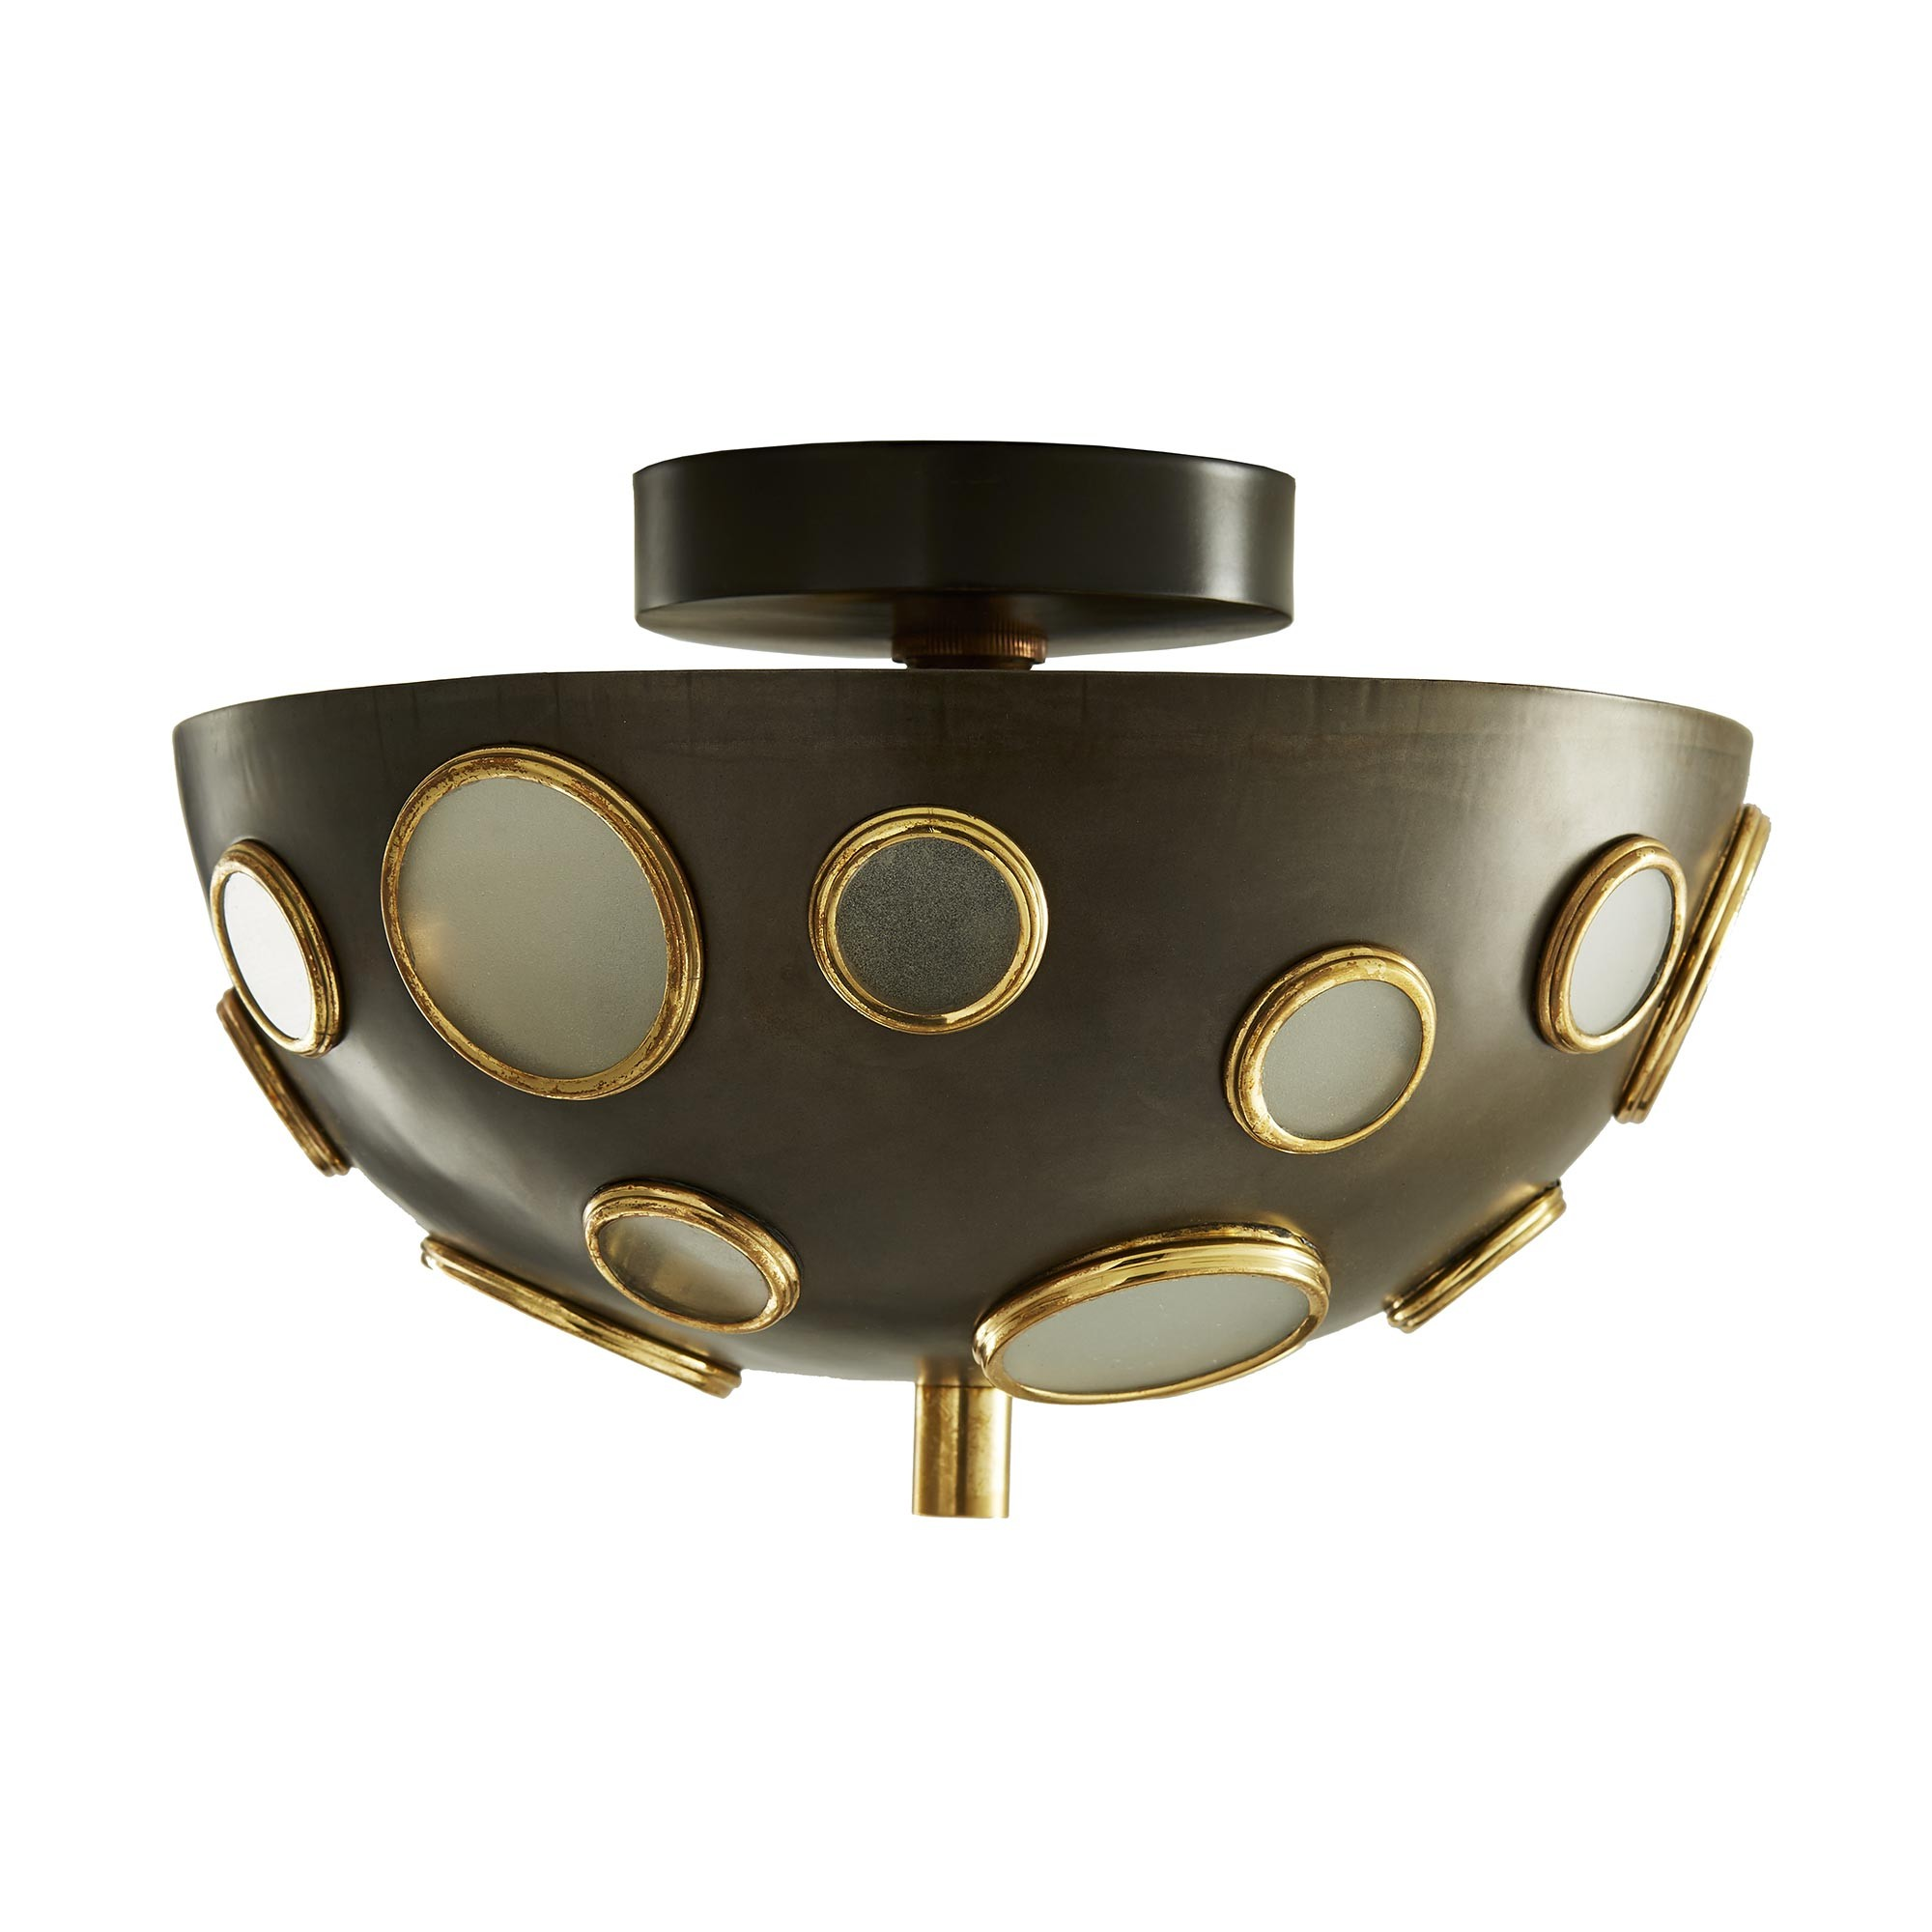 Pulp Home - Holly Sconce/Ceiling Mount - Low Profile Ceiling Lighting, Statement Light Fixtures, Circle Accented Lighting, Yayoi Kusama Inspired Home Decor, Speckled Iron Dome Ceiling Mount